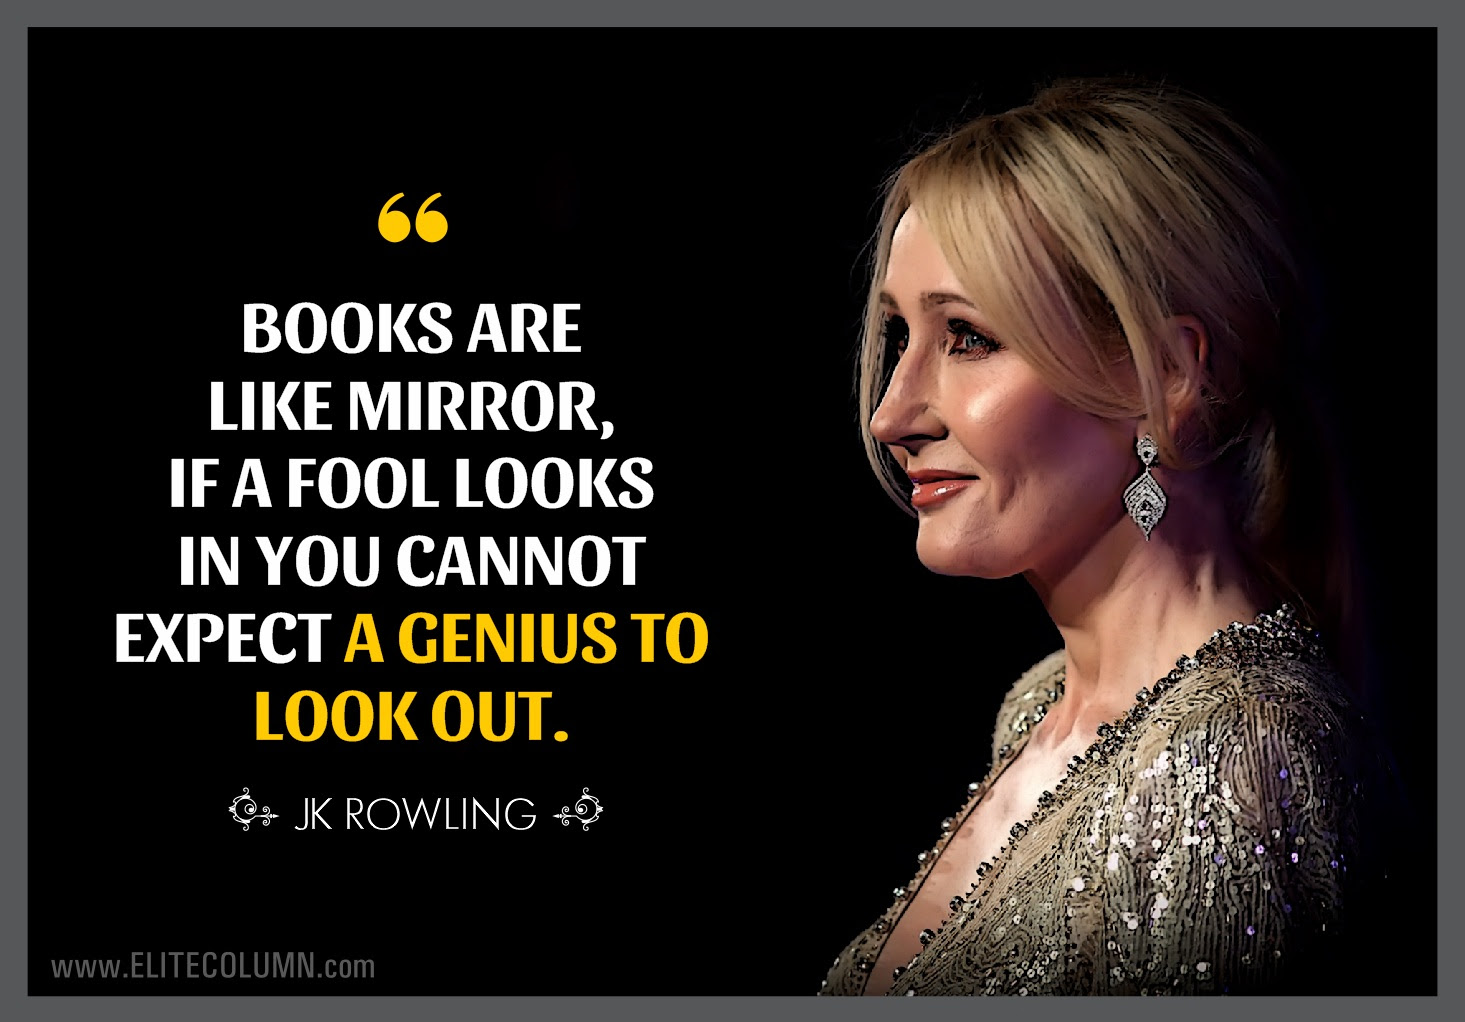 10 Best JK Rowling Quotes To Achieve Your Dreams  EliteColumn